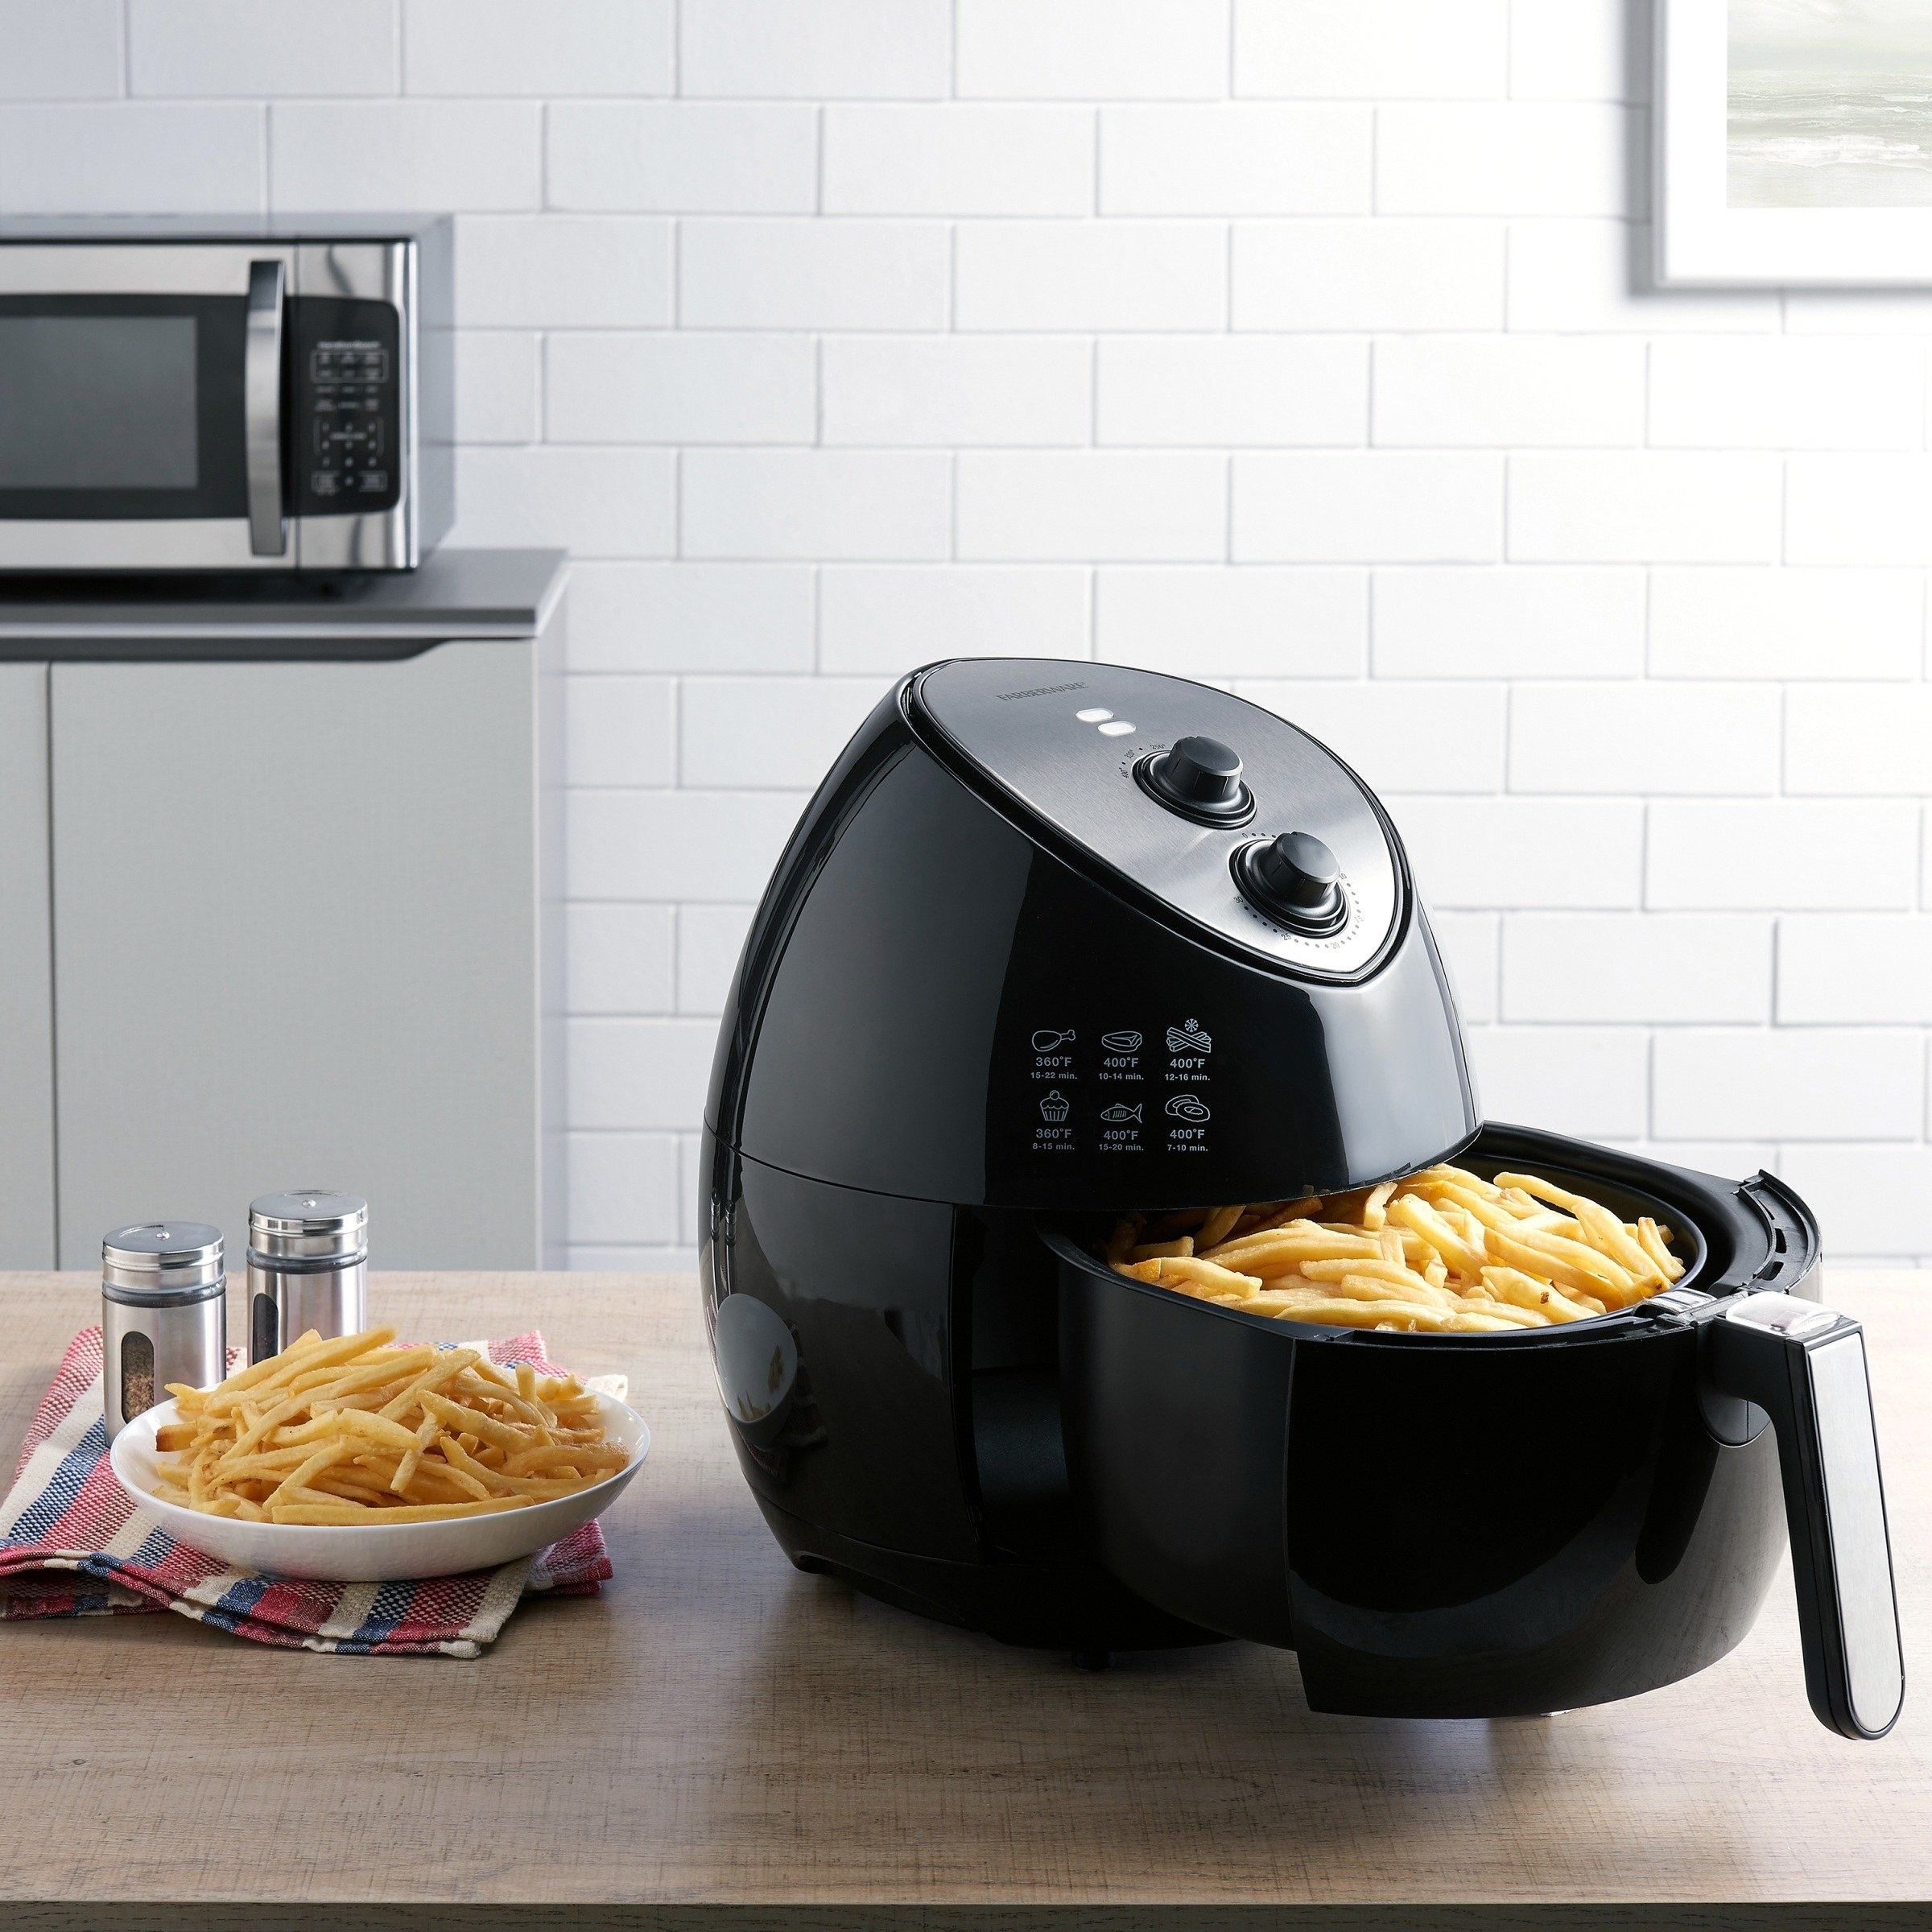 The air fryer and french fries in a kitchen